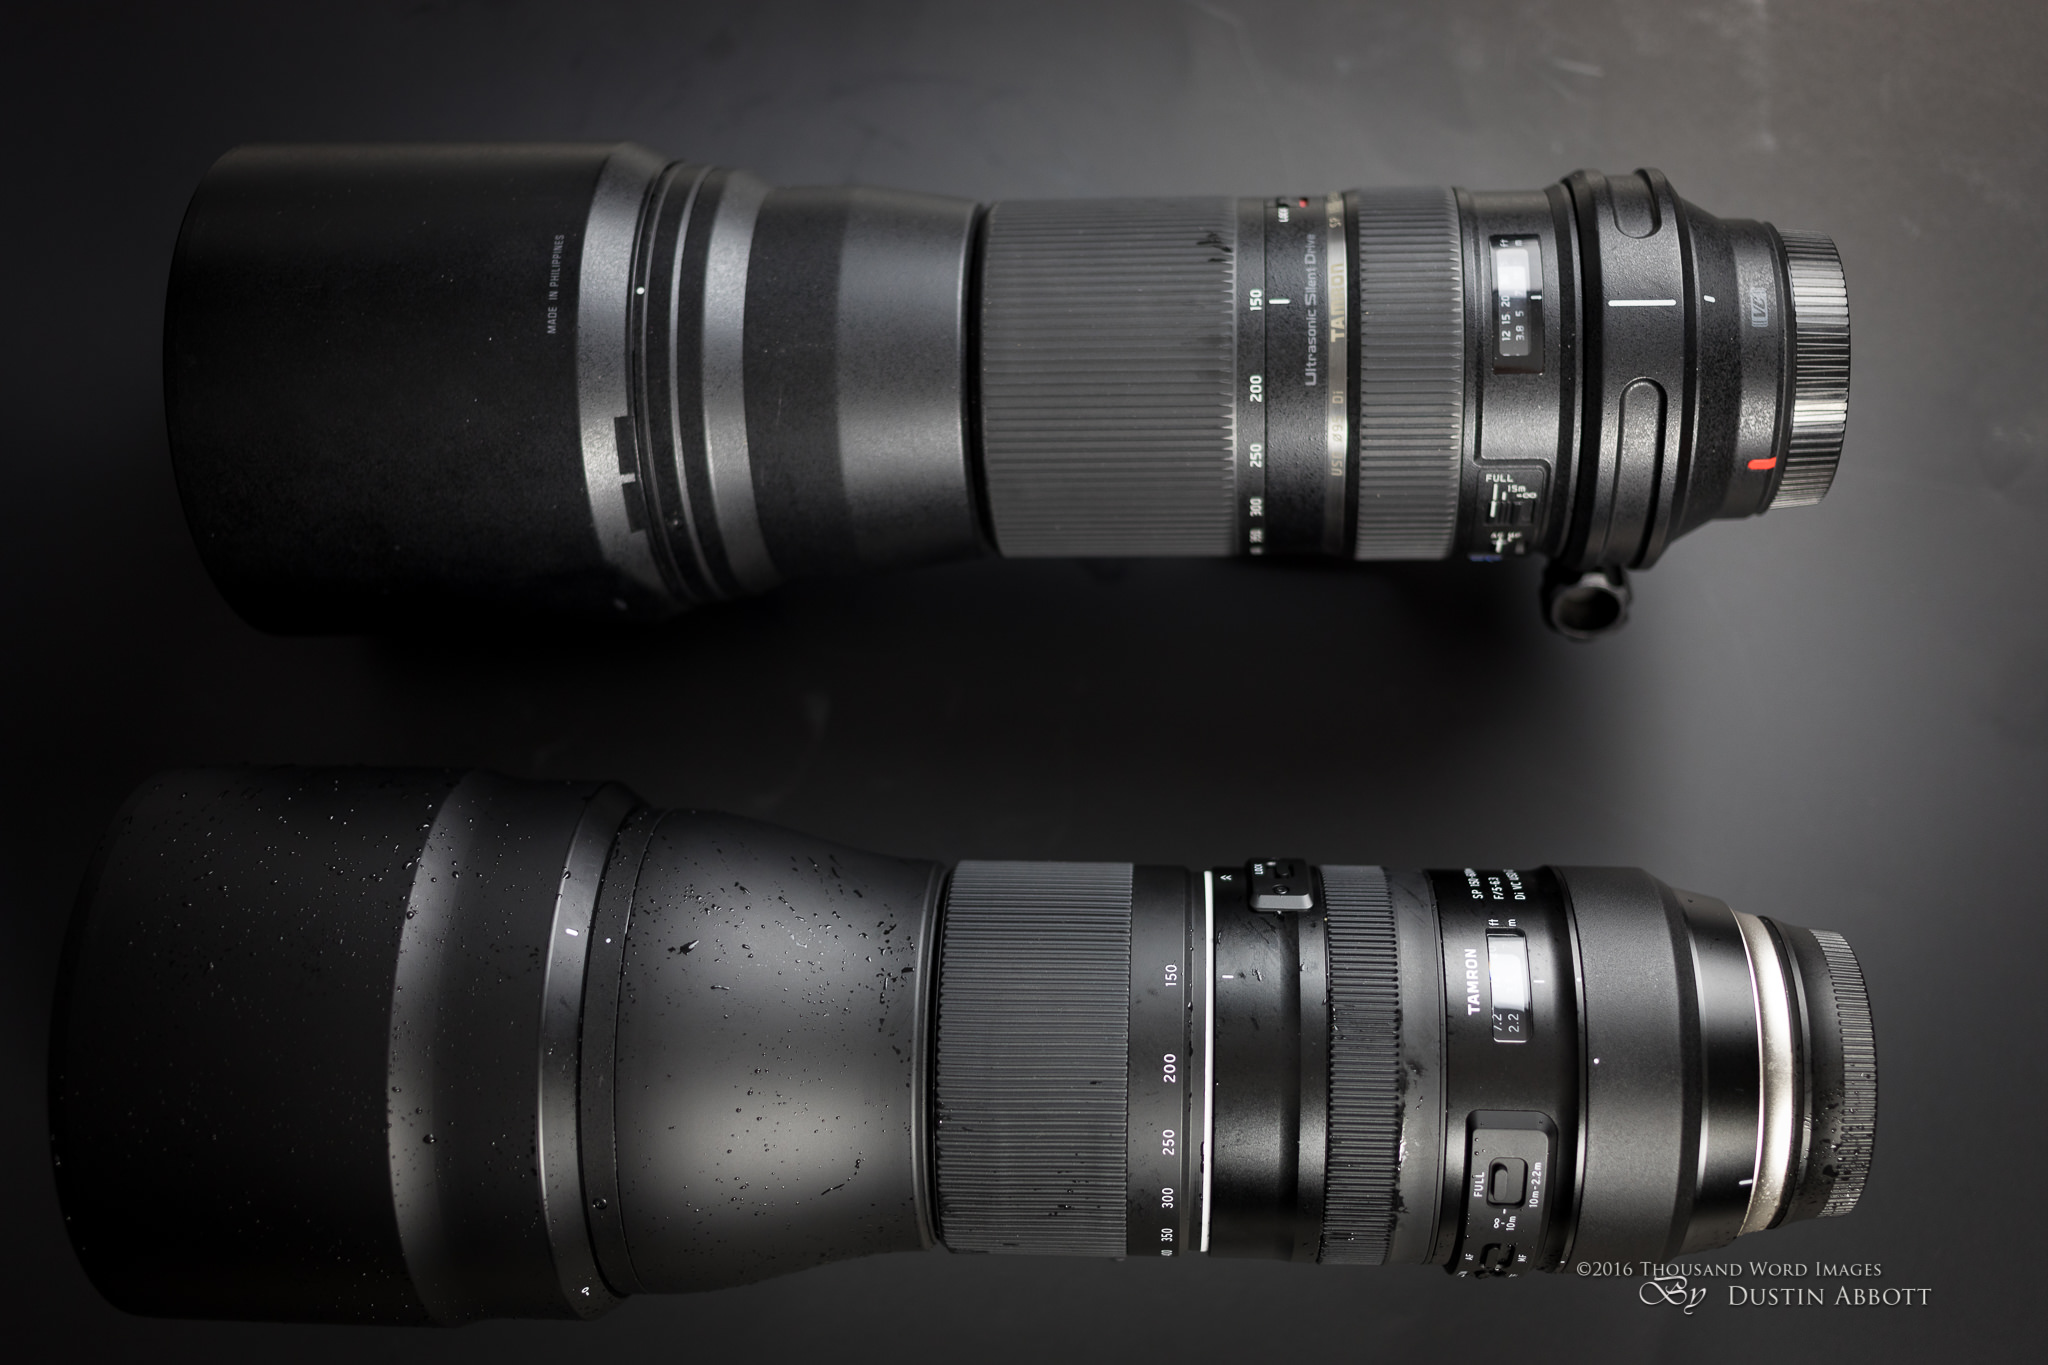 Tamron SP 150-600mm f/5-6 3 Di VC USD G2 Review